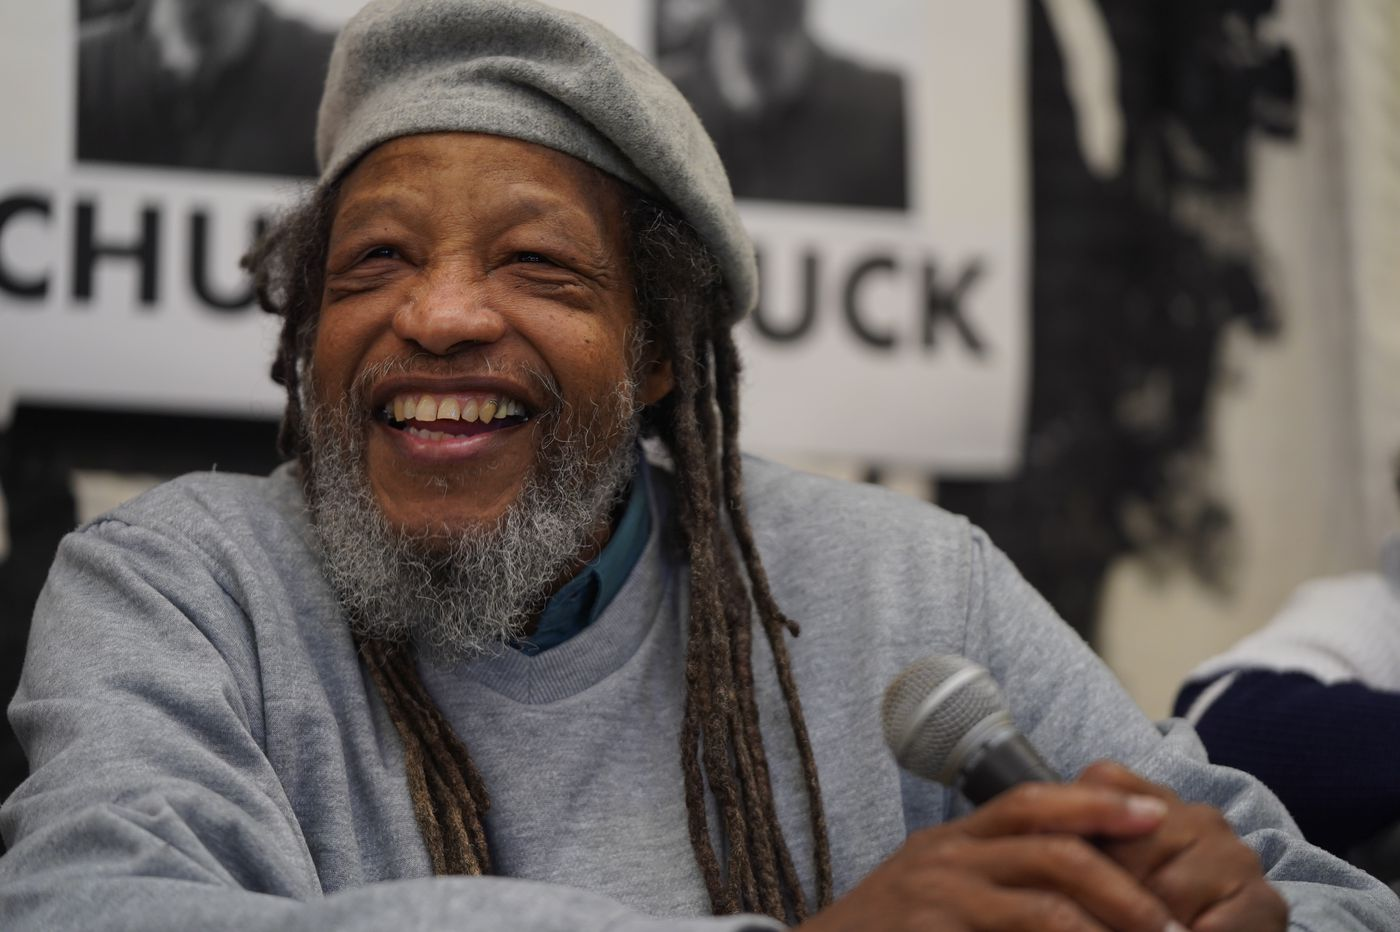 Out of prison after 41 years, MOVE member Delbert Africa rails against 'unjust' criminal justice system